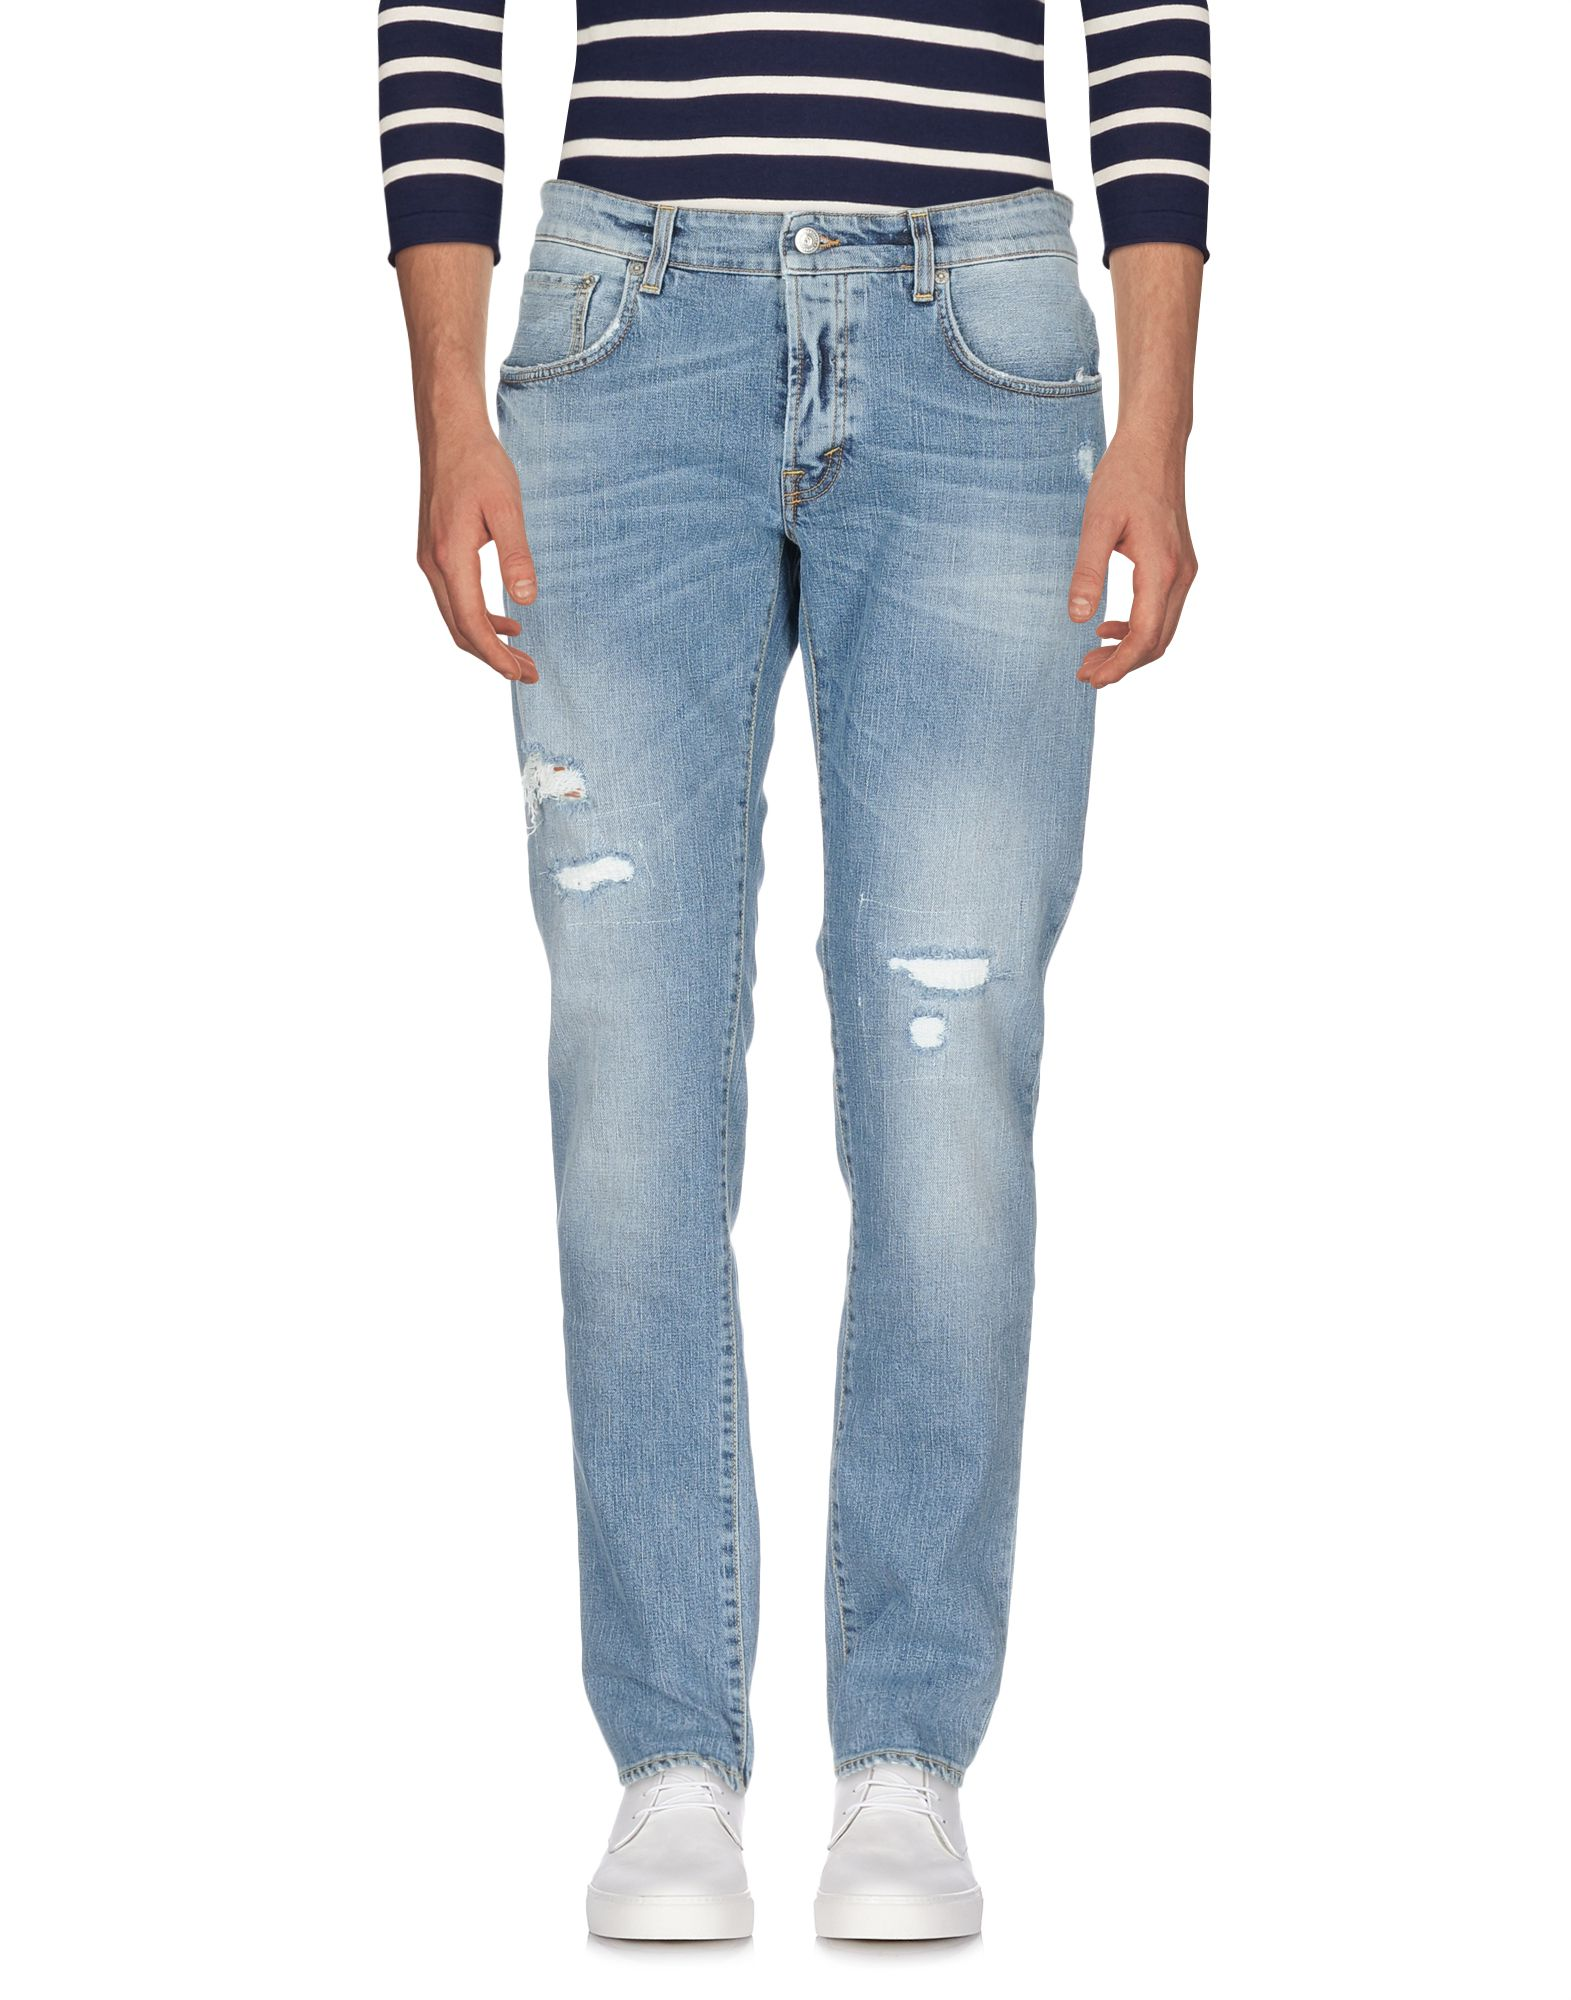 Pantaloni Jeans Department 5 Uomo - Acquista online su